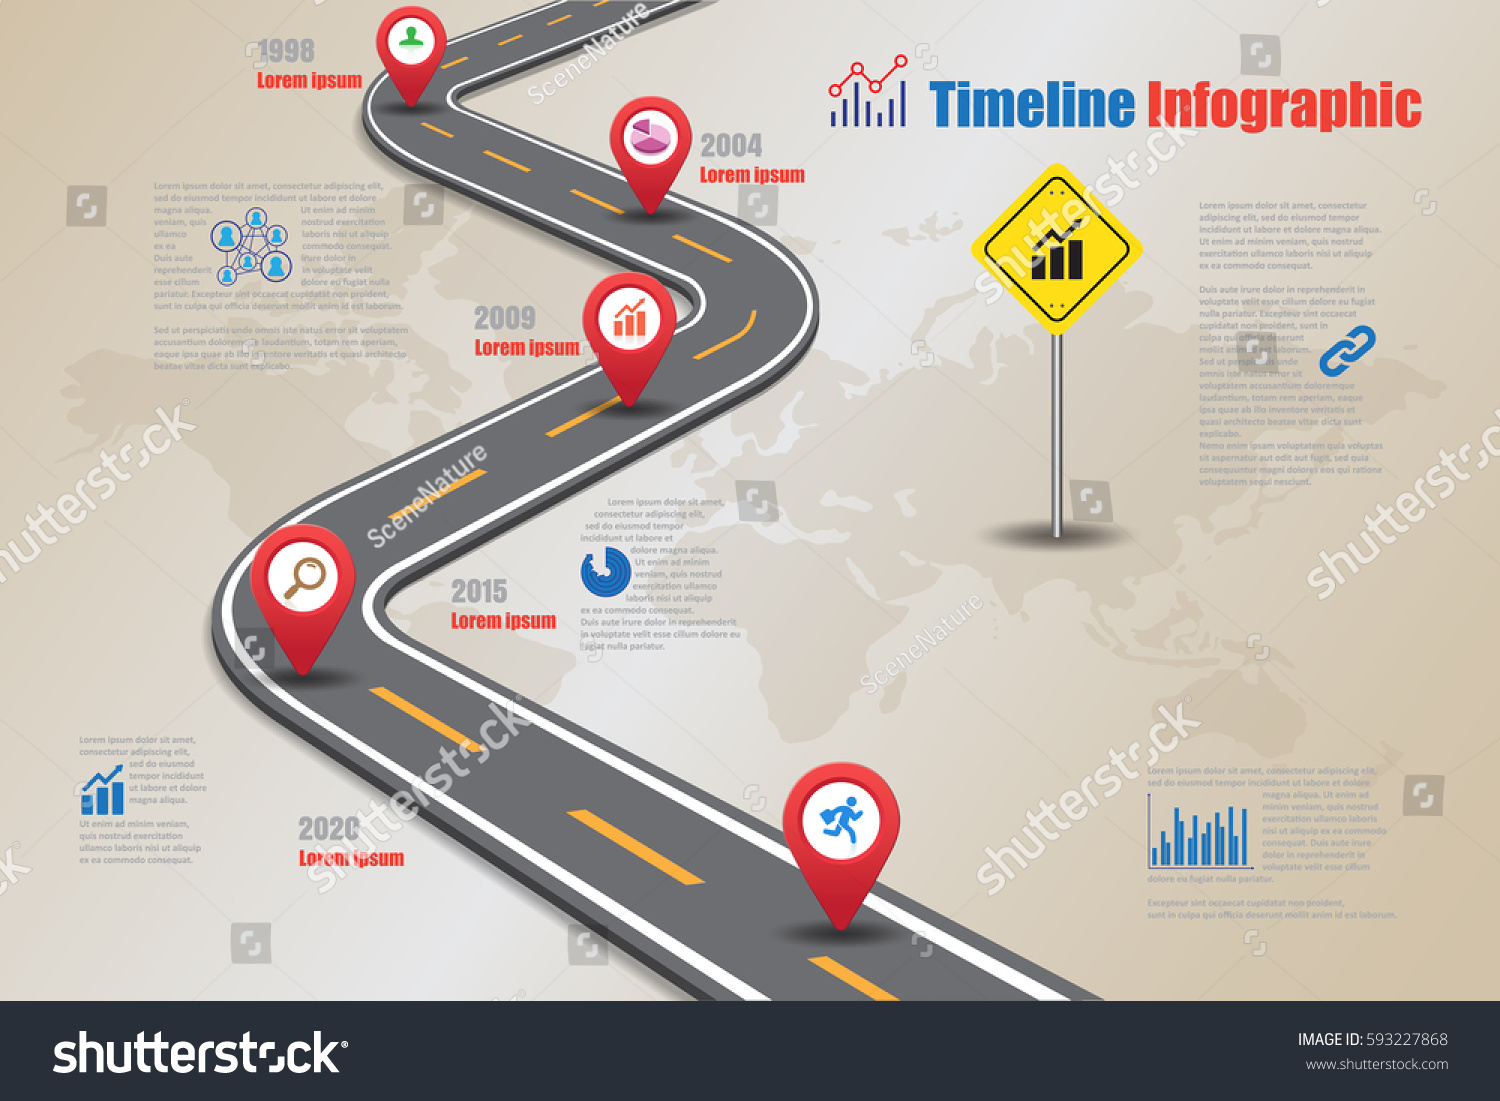 Design Template Road Map Timeline Infographic Stock Vector 593227868